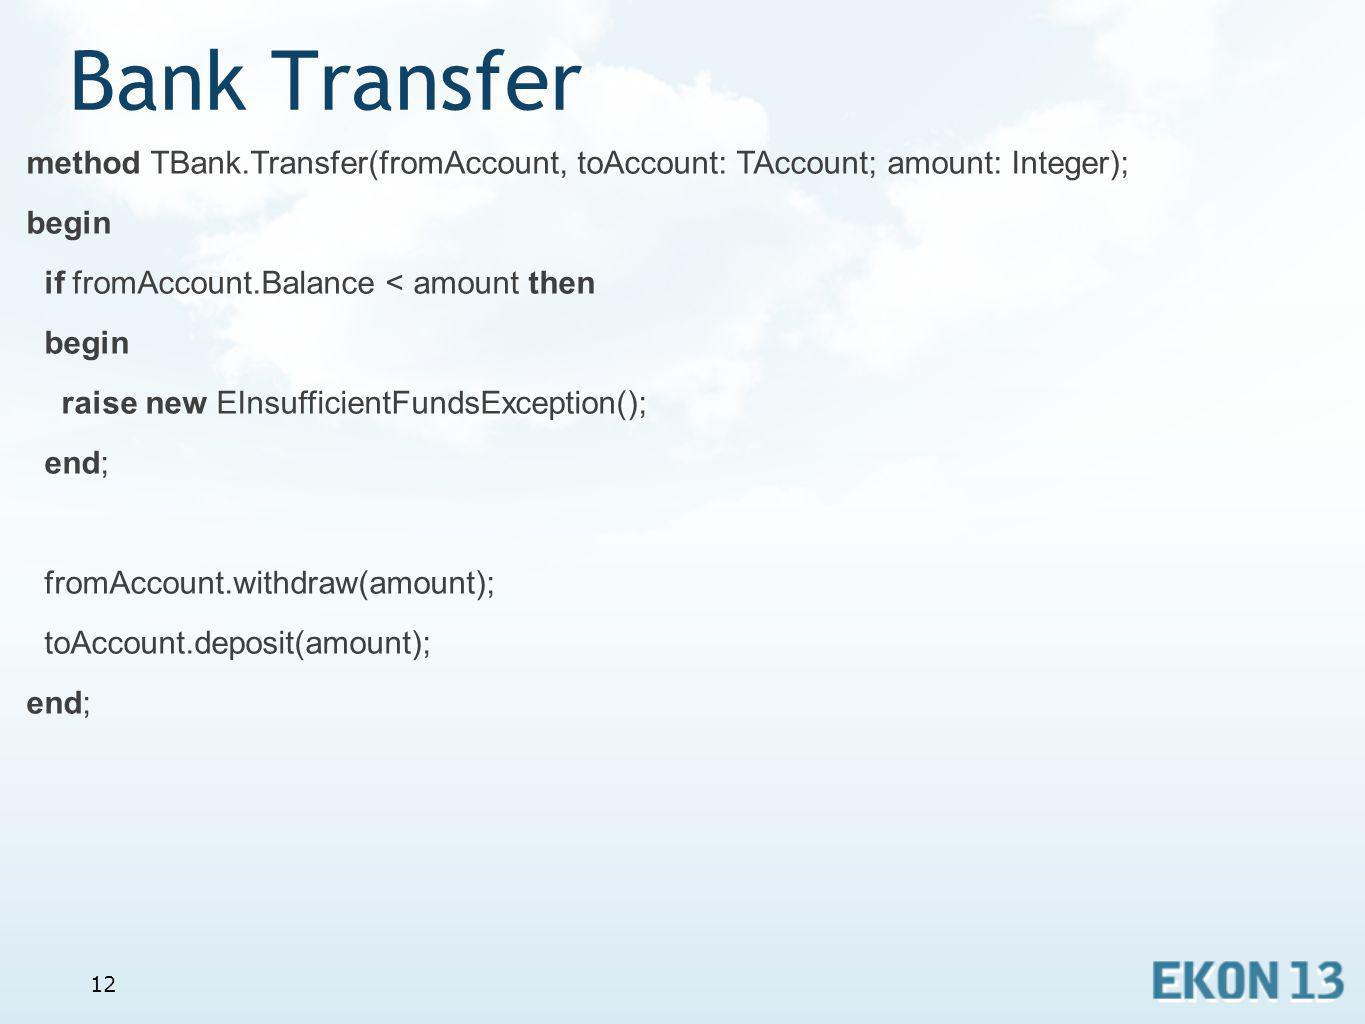 Bank Transfer method TBank.Transfer(fromAccount, toAccount: TAccount; amount: Integer); begin. if fromAccount.Balance < amount then.